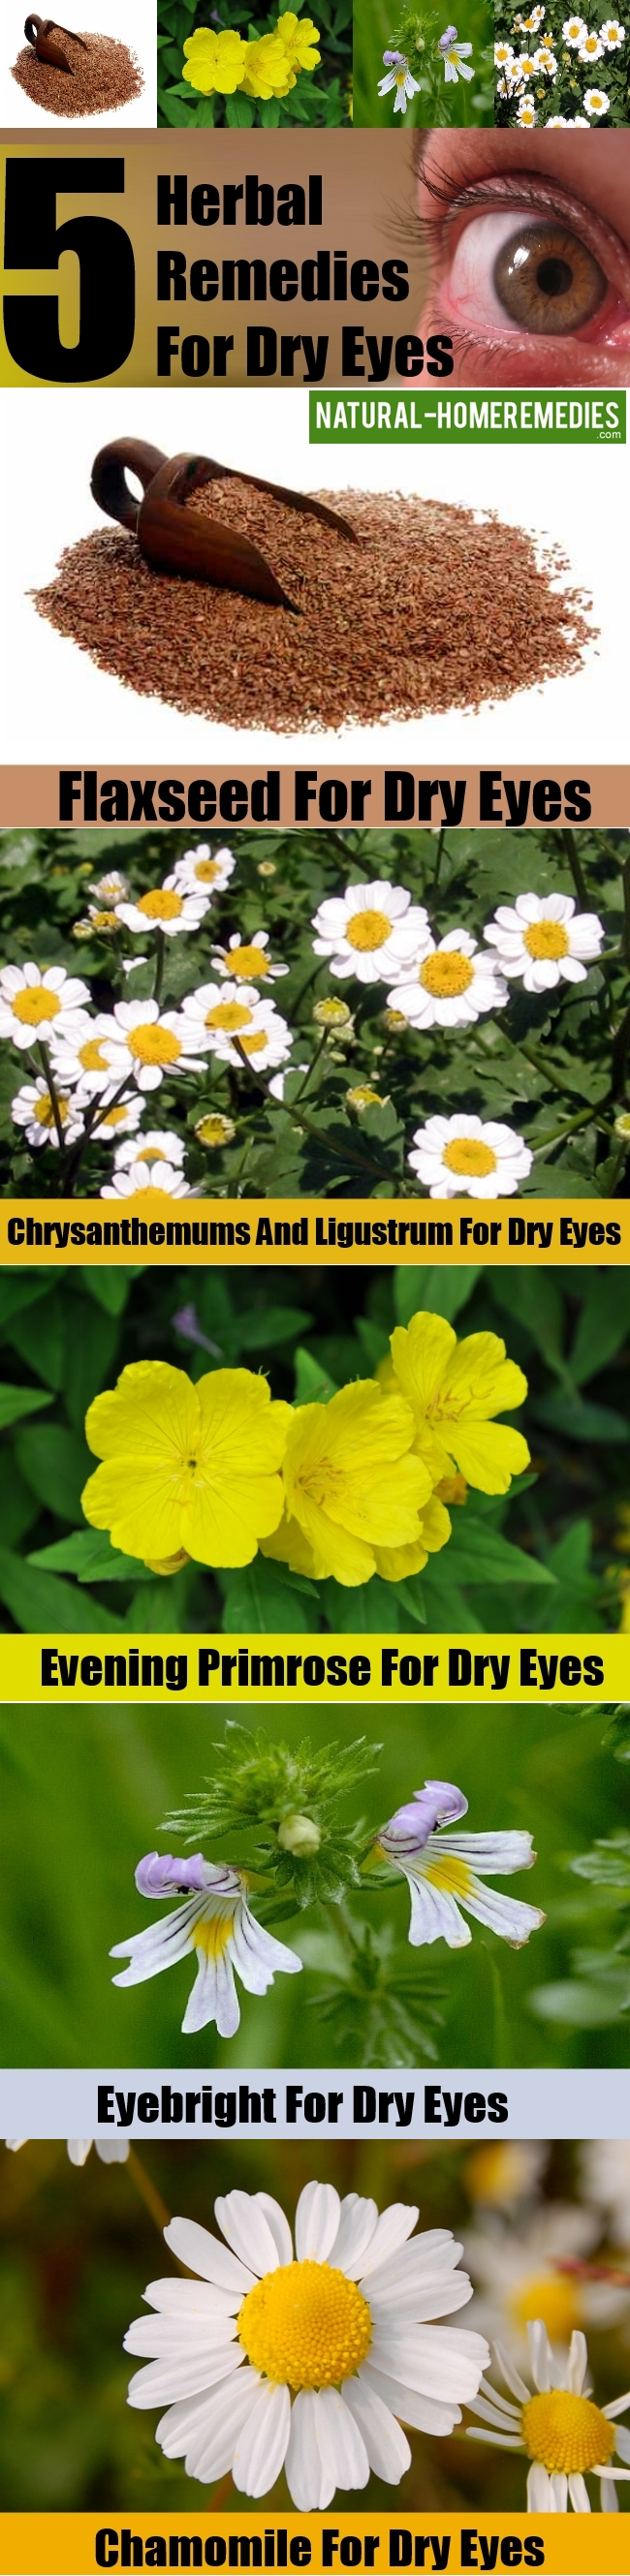 Top 5 Herbal Remedies For Dry Eyes